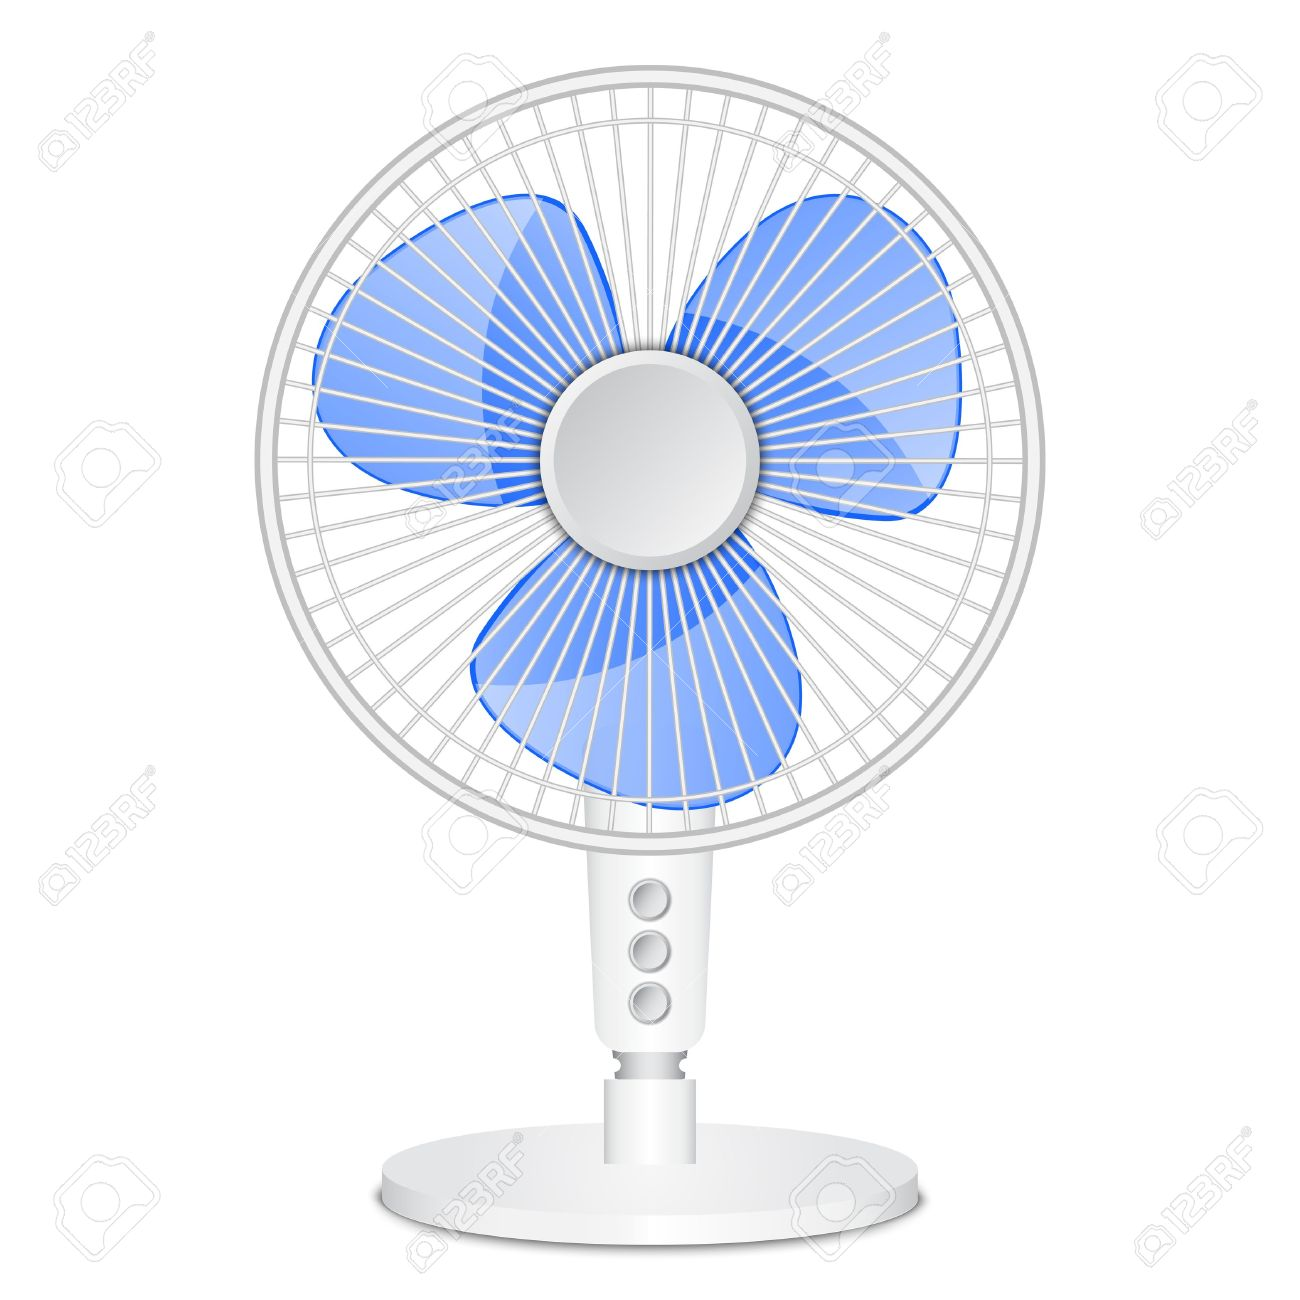 Clipart electric fan - ClipartFest